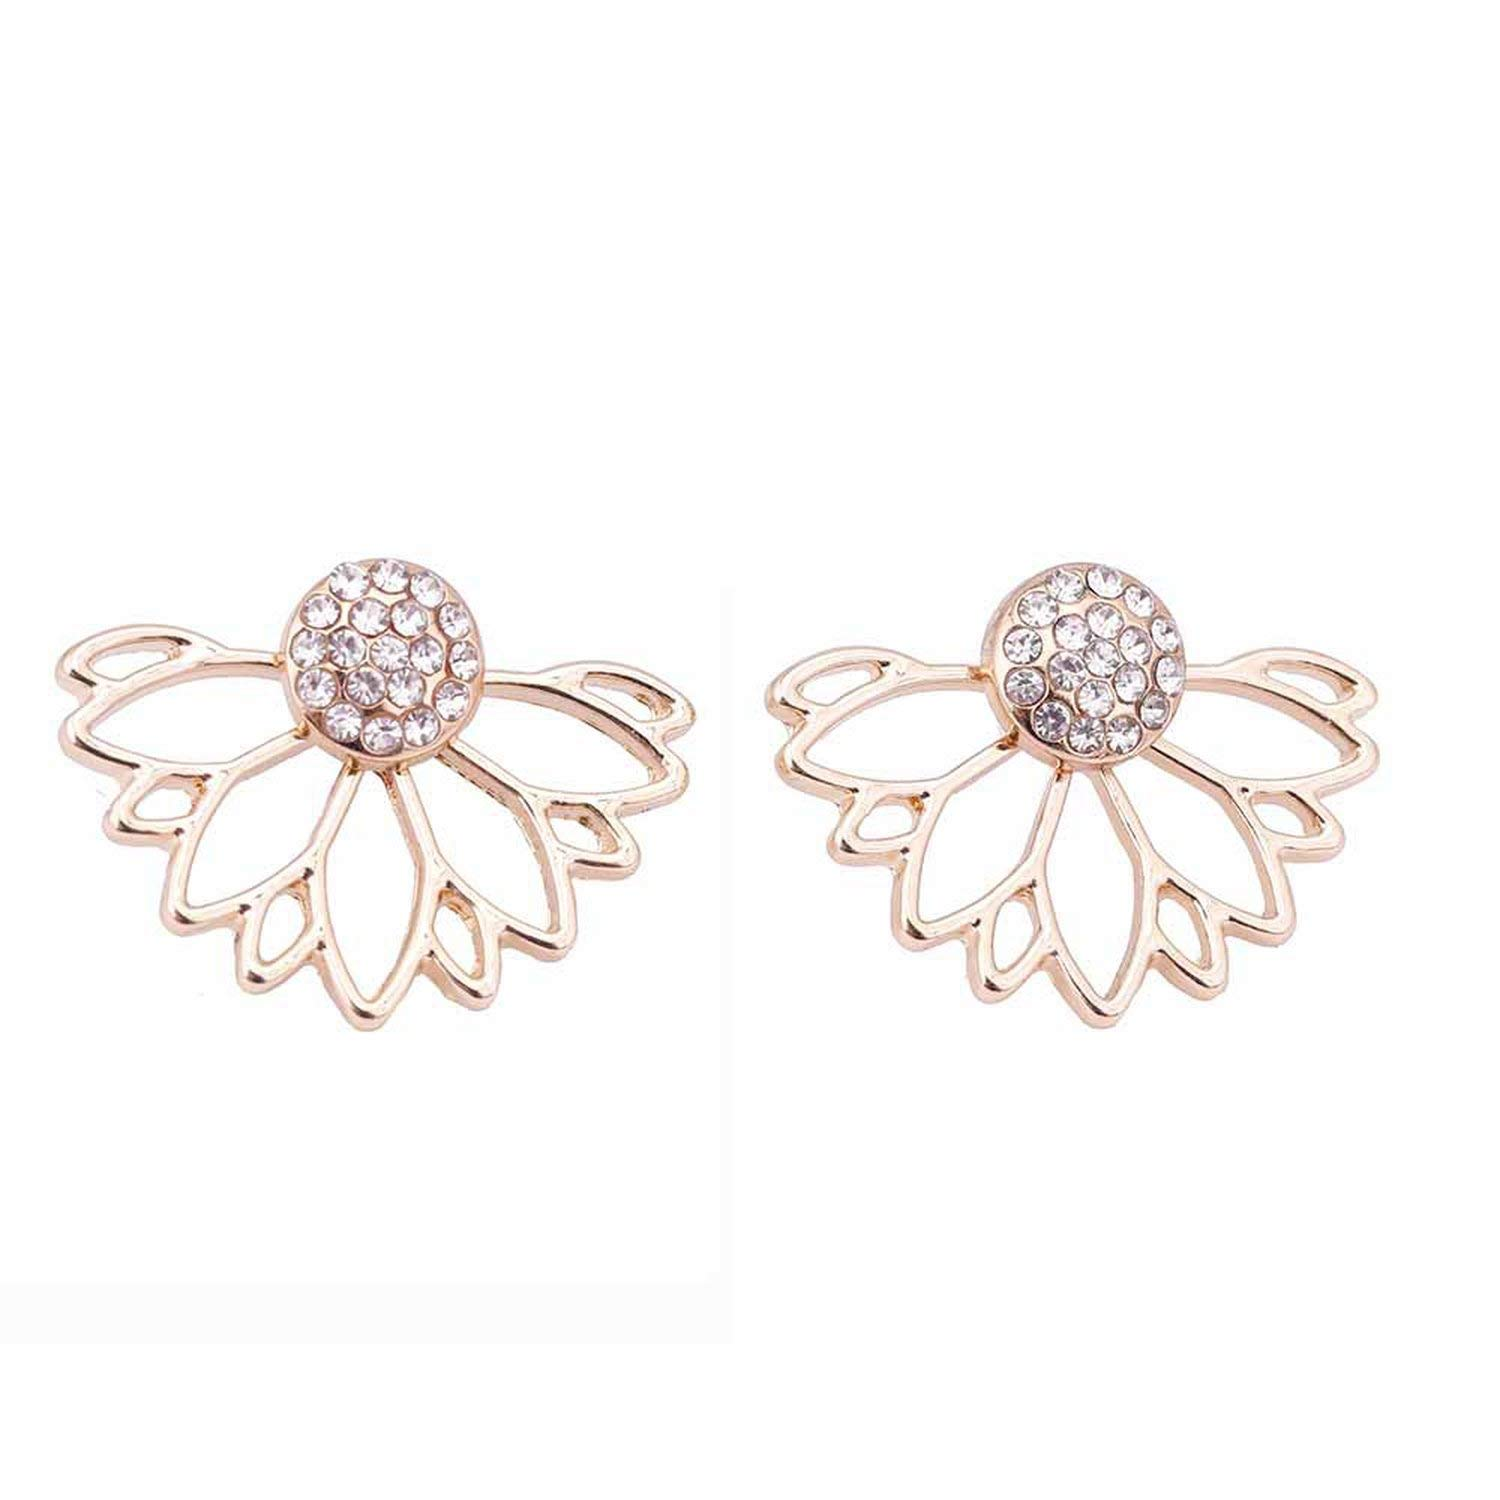 Peony red 2019 Crystal Flower Stud Earrings For Women fashion Jewelry gold sliver Simple design Rhinestones Earring jewelry e0400